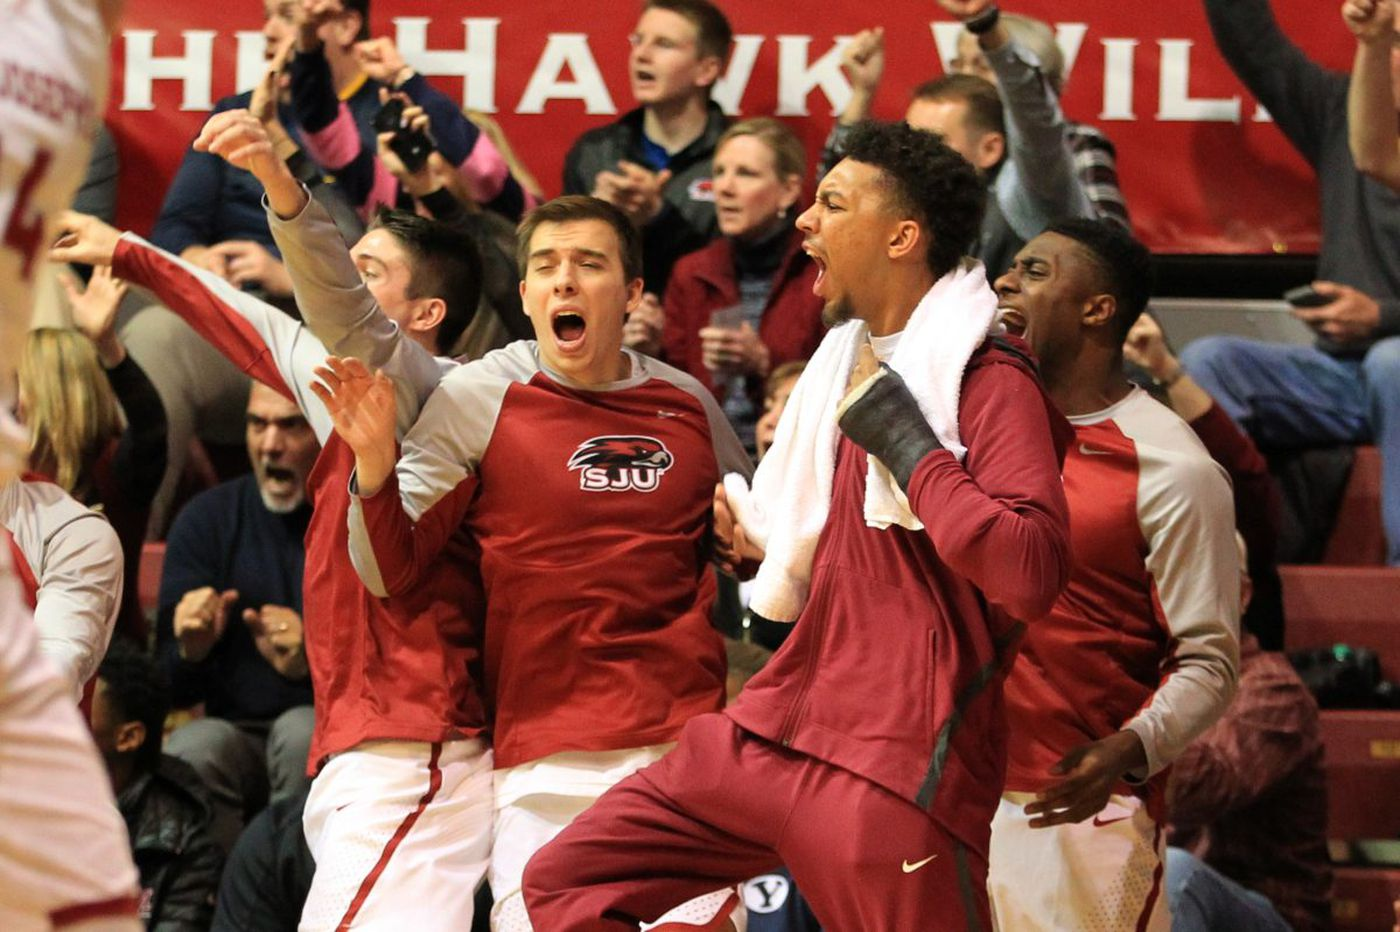 St. Joseph's beats Duquesne for third straight win